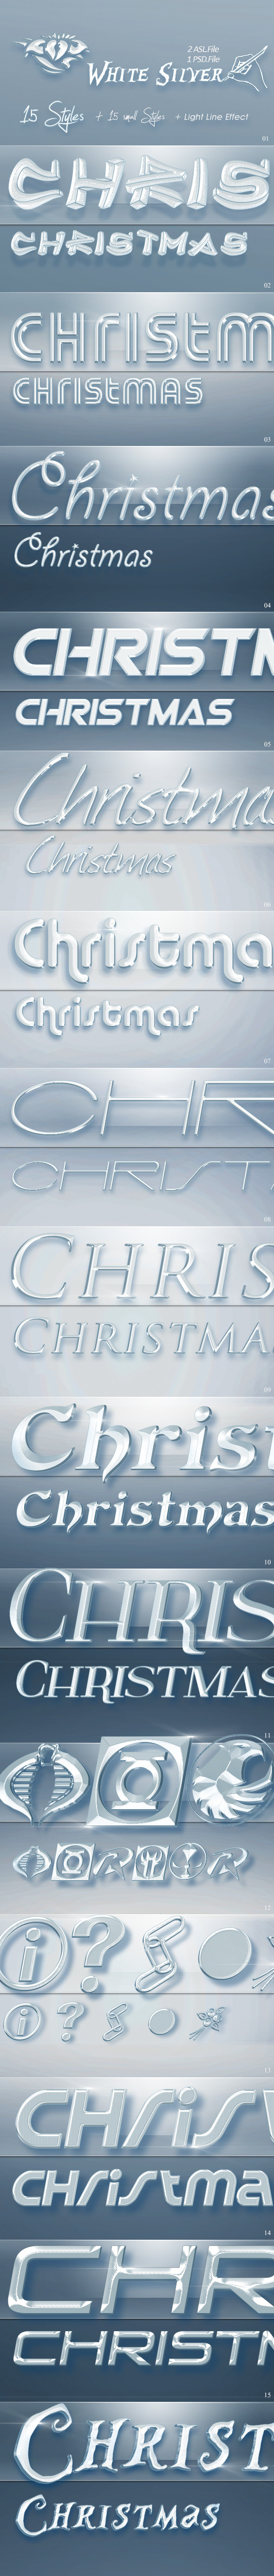 15 White Silver Text Styles for Photoshop (Christm - Text Effects Styles